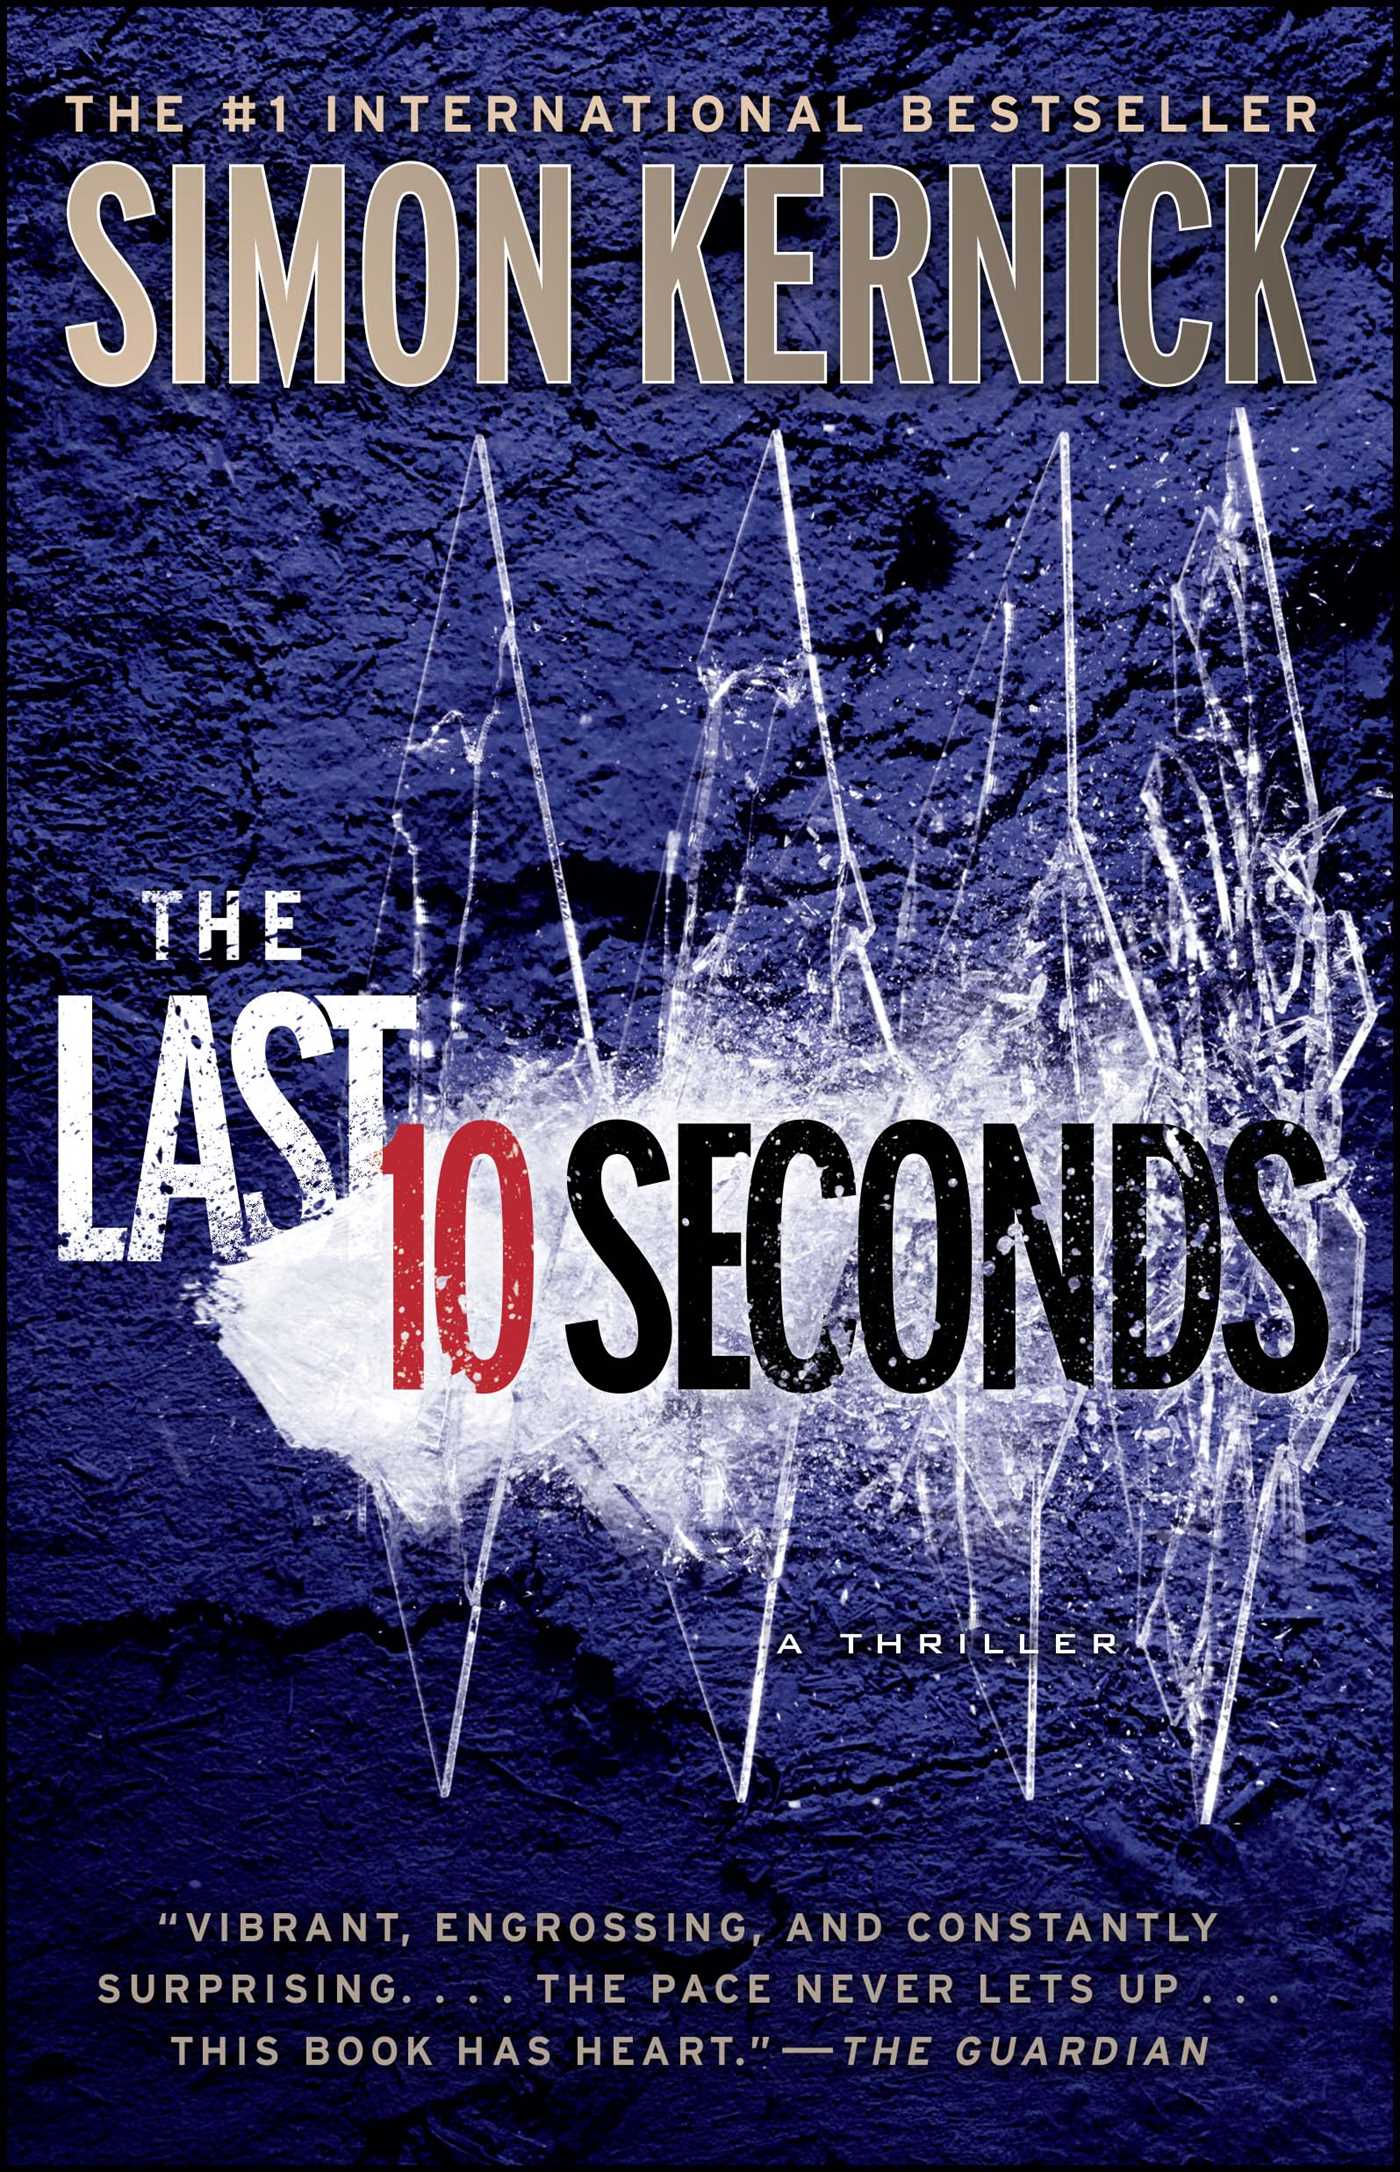 The-last-10-seconds-9781476706207_hr